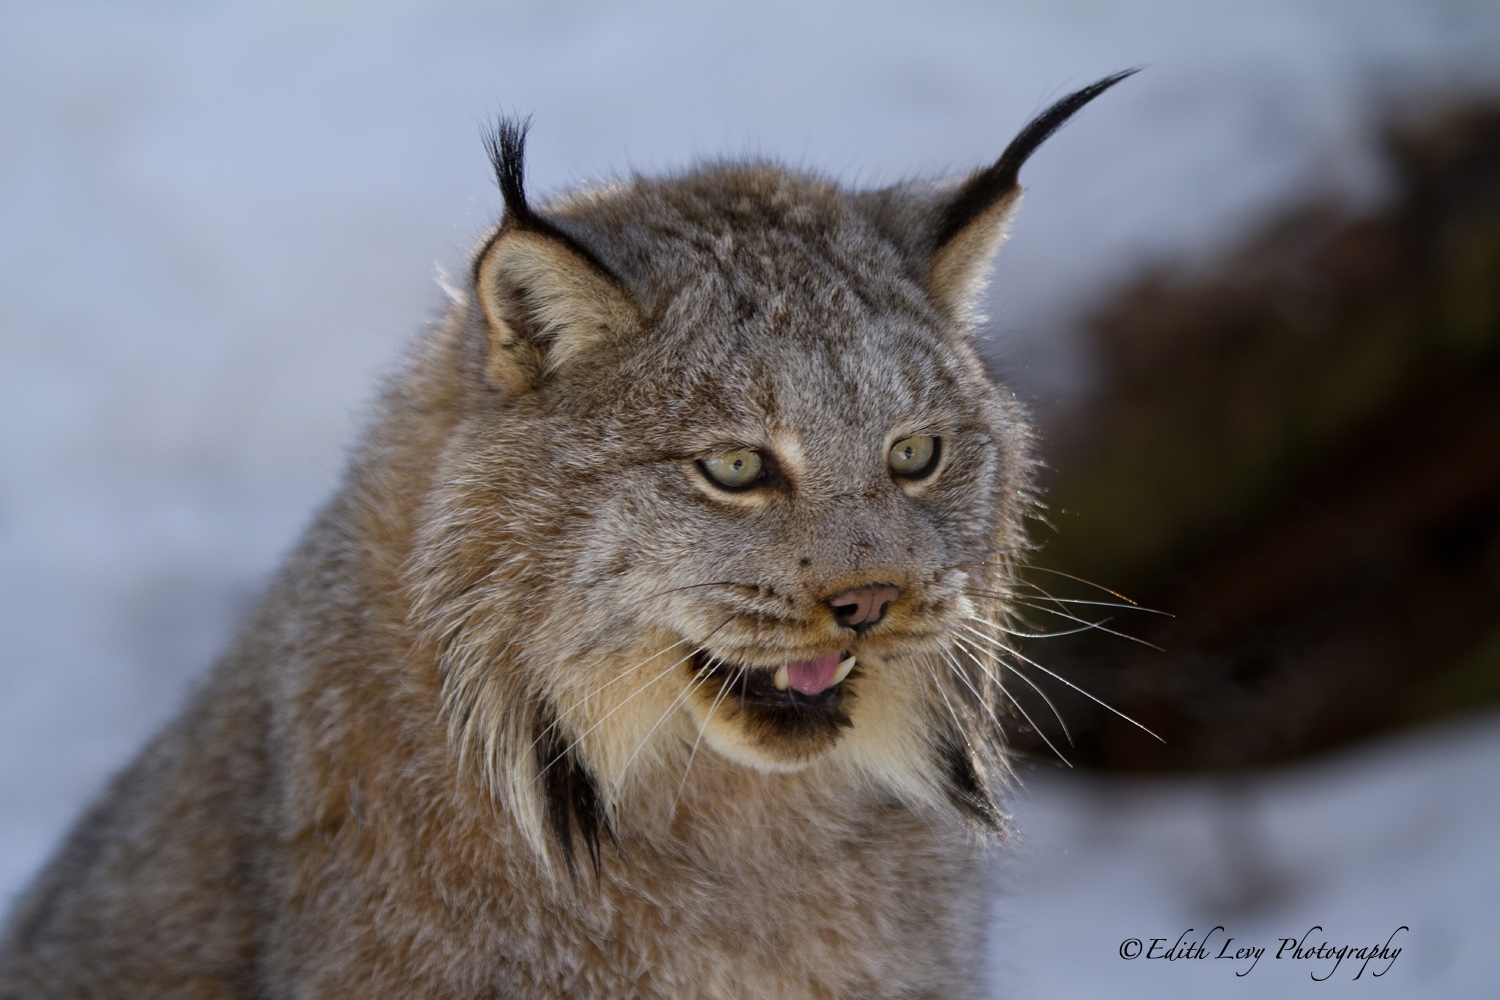 Muskoka Wildlife Reserve, Ontario, cat, Lynx, winter, stock image, portrait